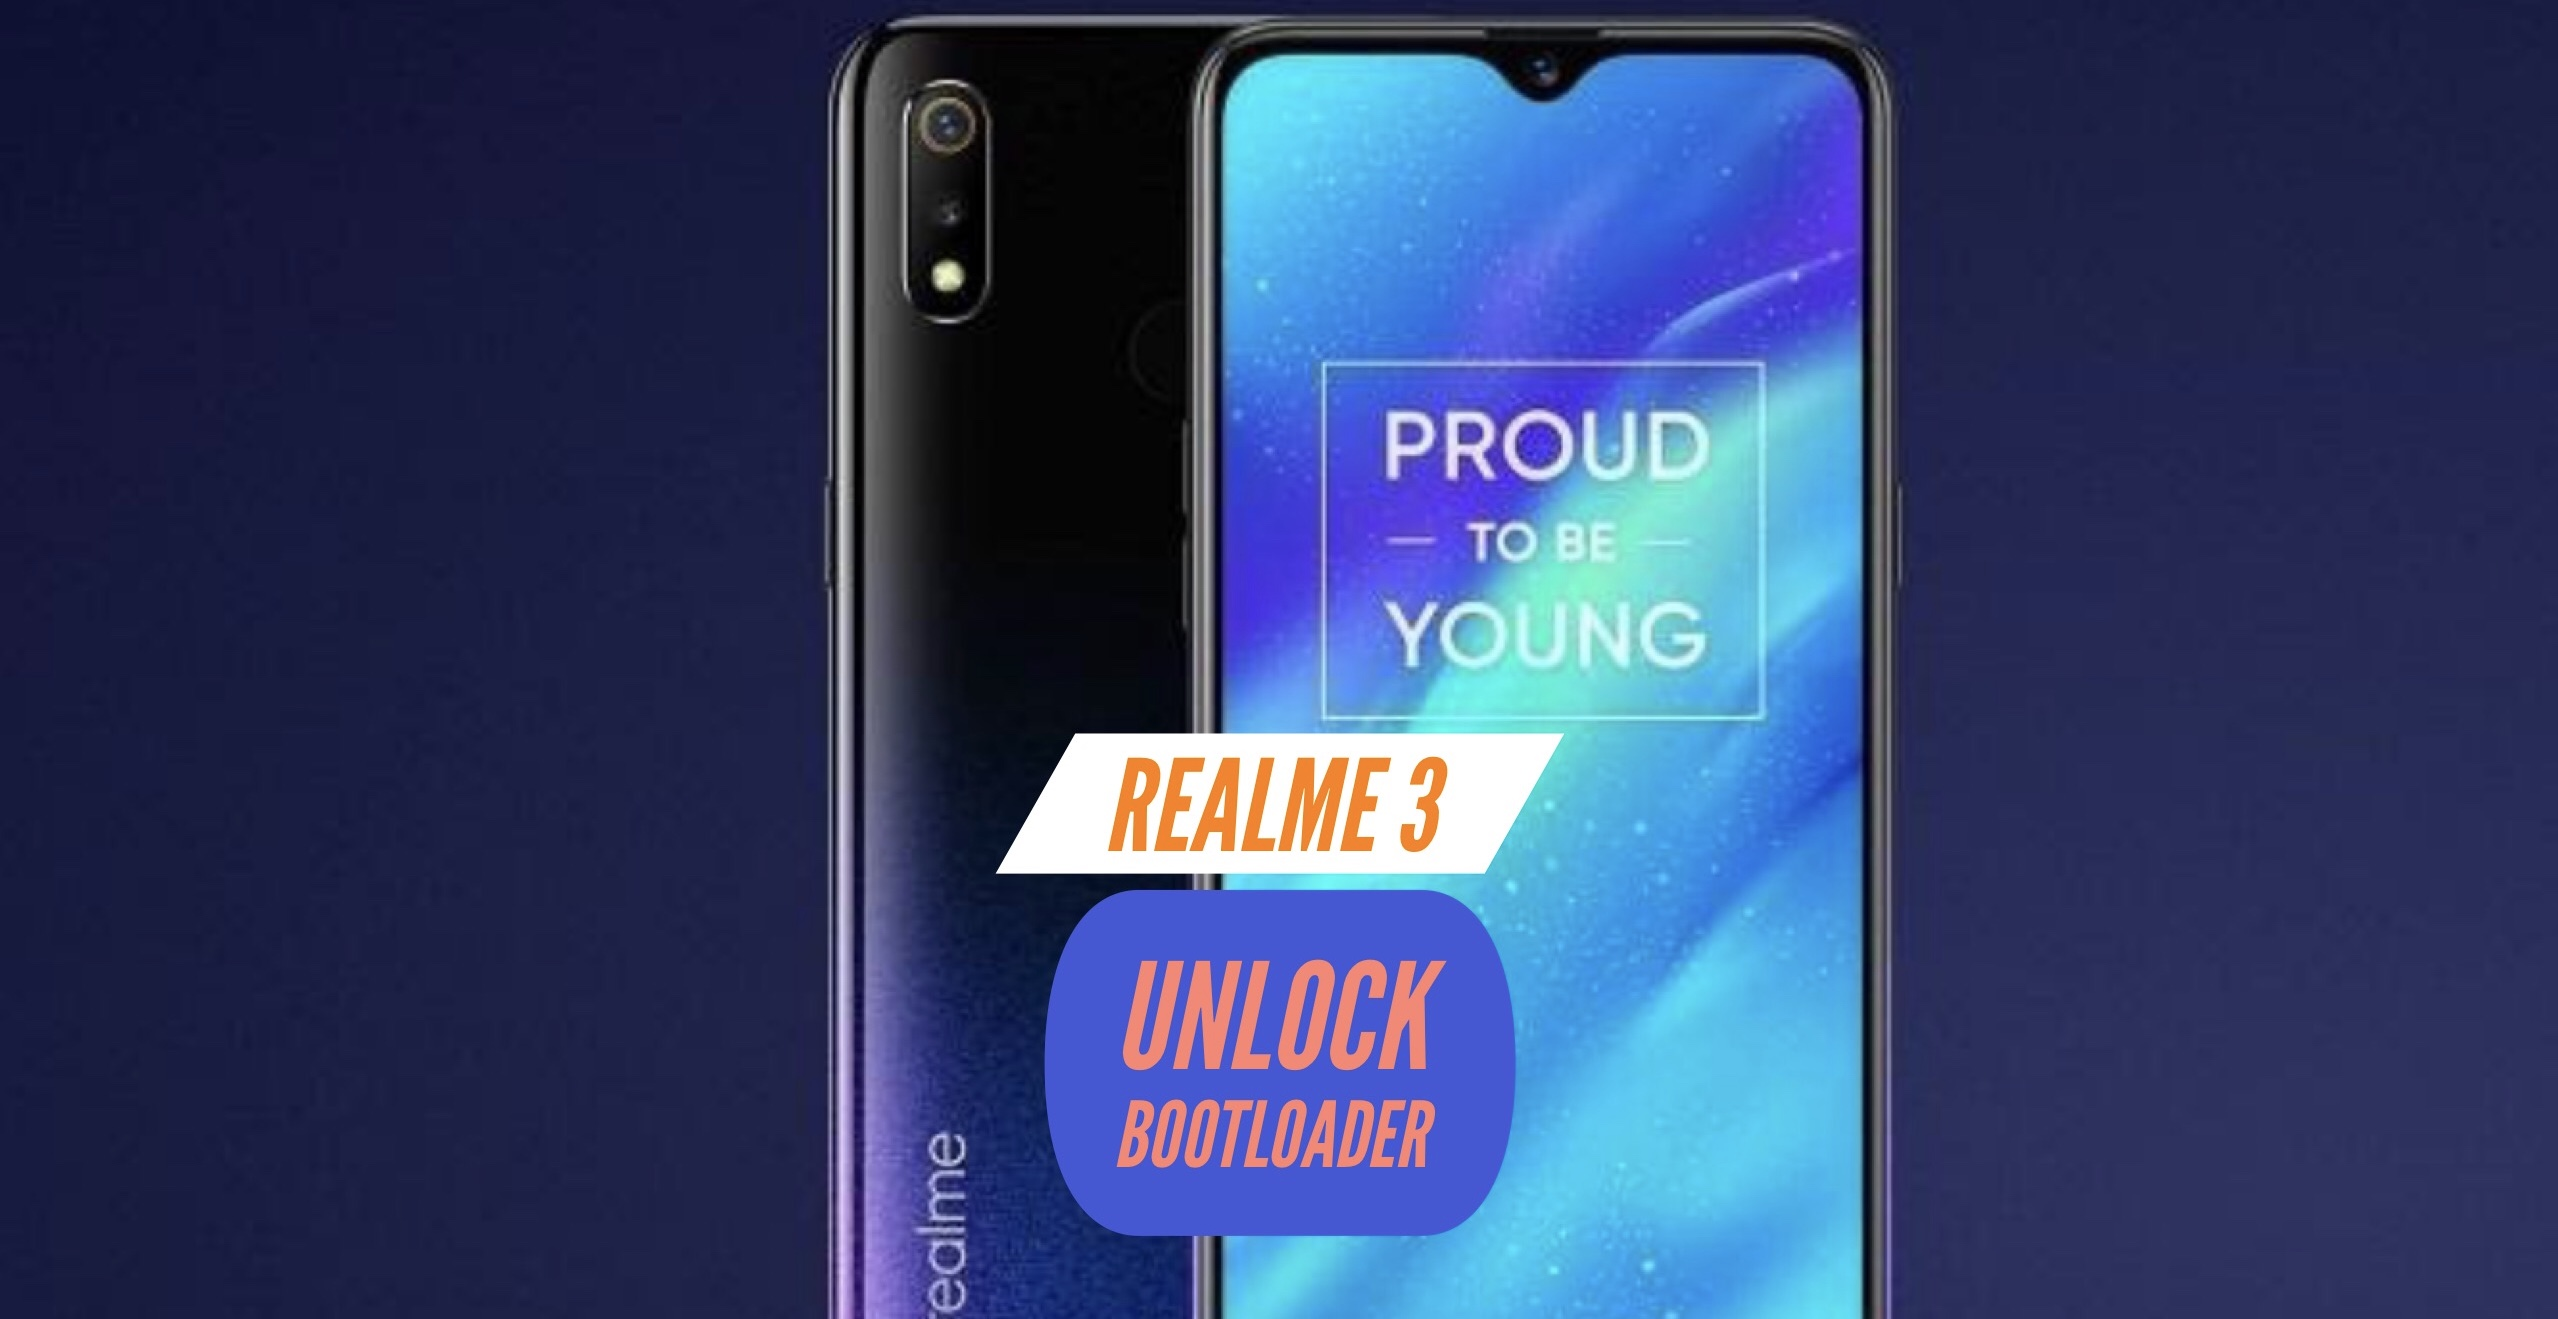 How to Unlock Bootloader on Realme 3 - Easy OEM Unlocking!